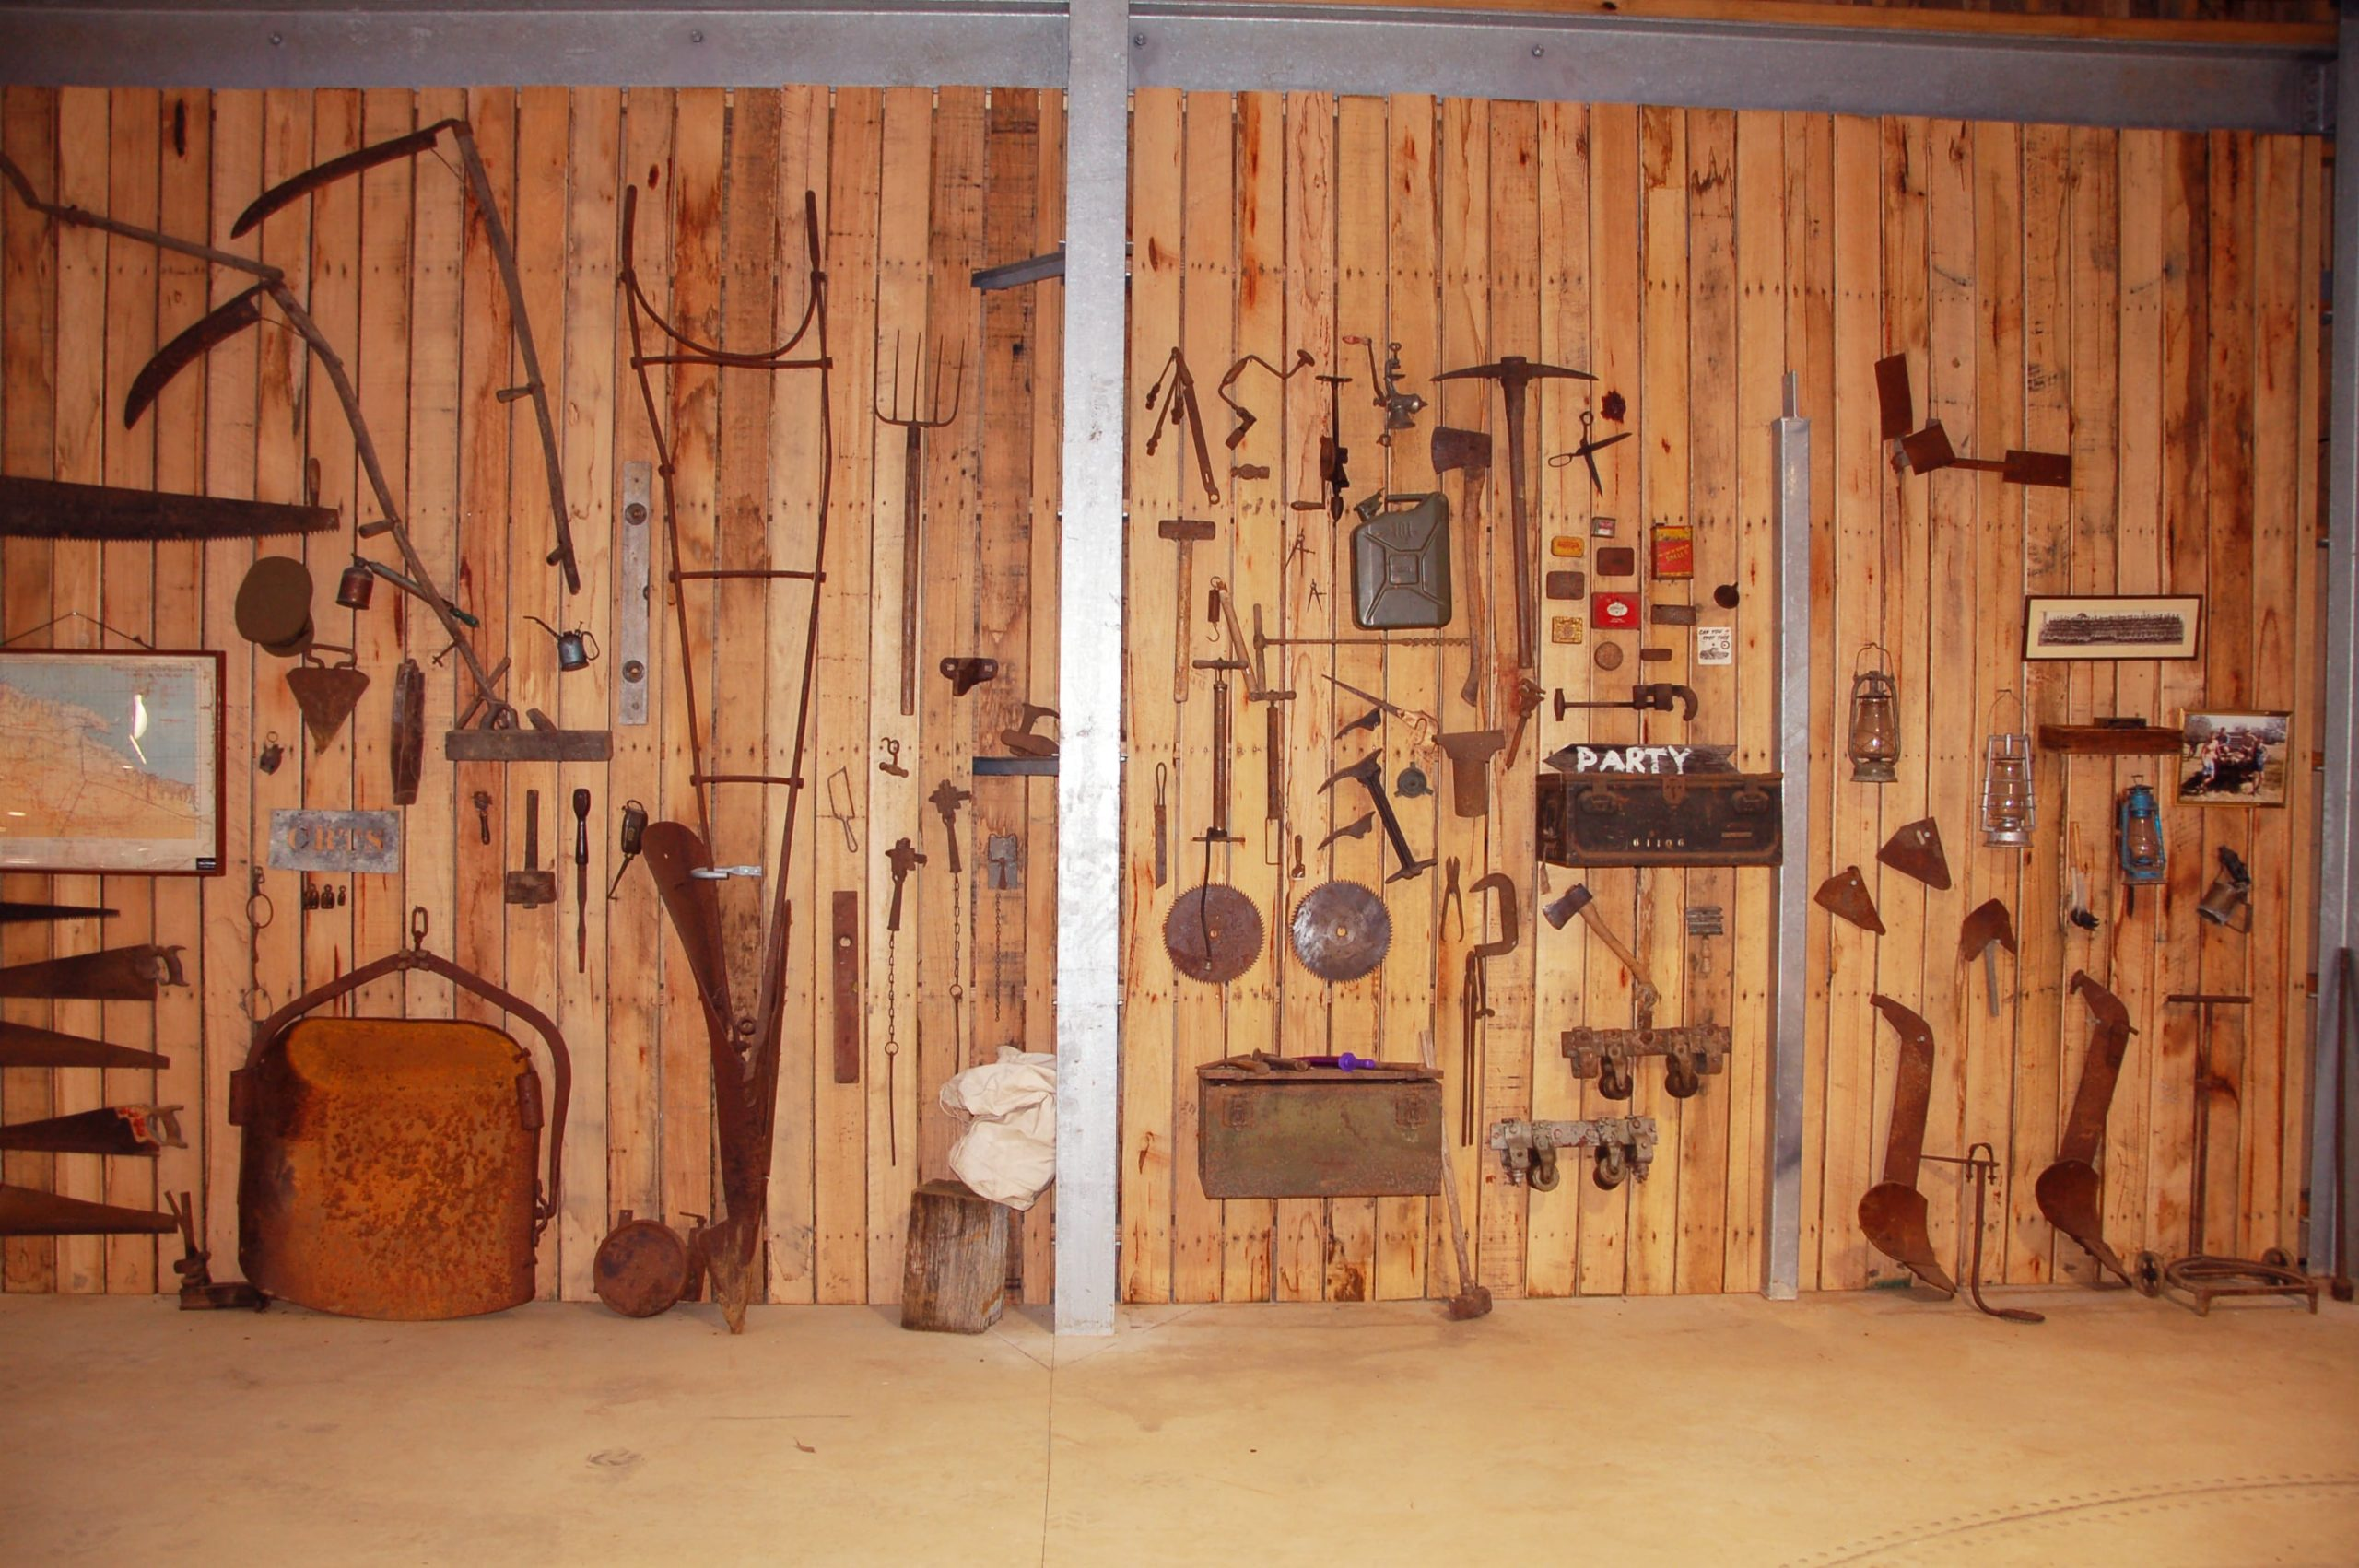 This is a closer look at the wall inside the garage and shed with various tools on display and storage.